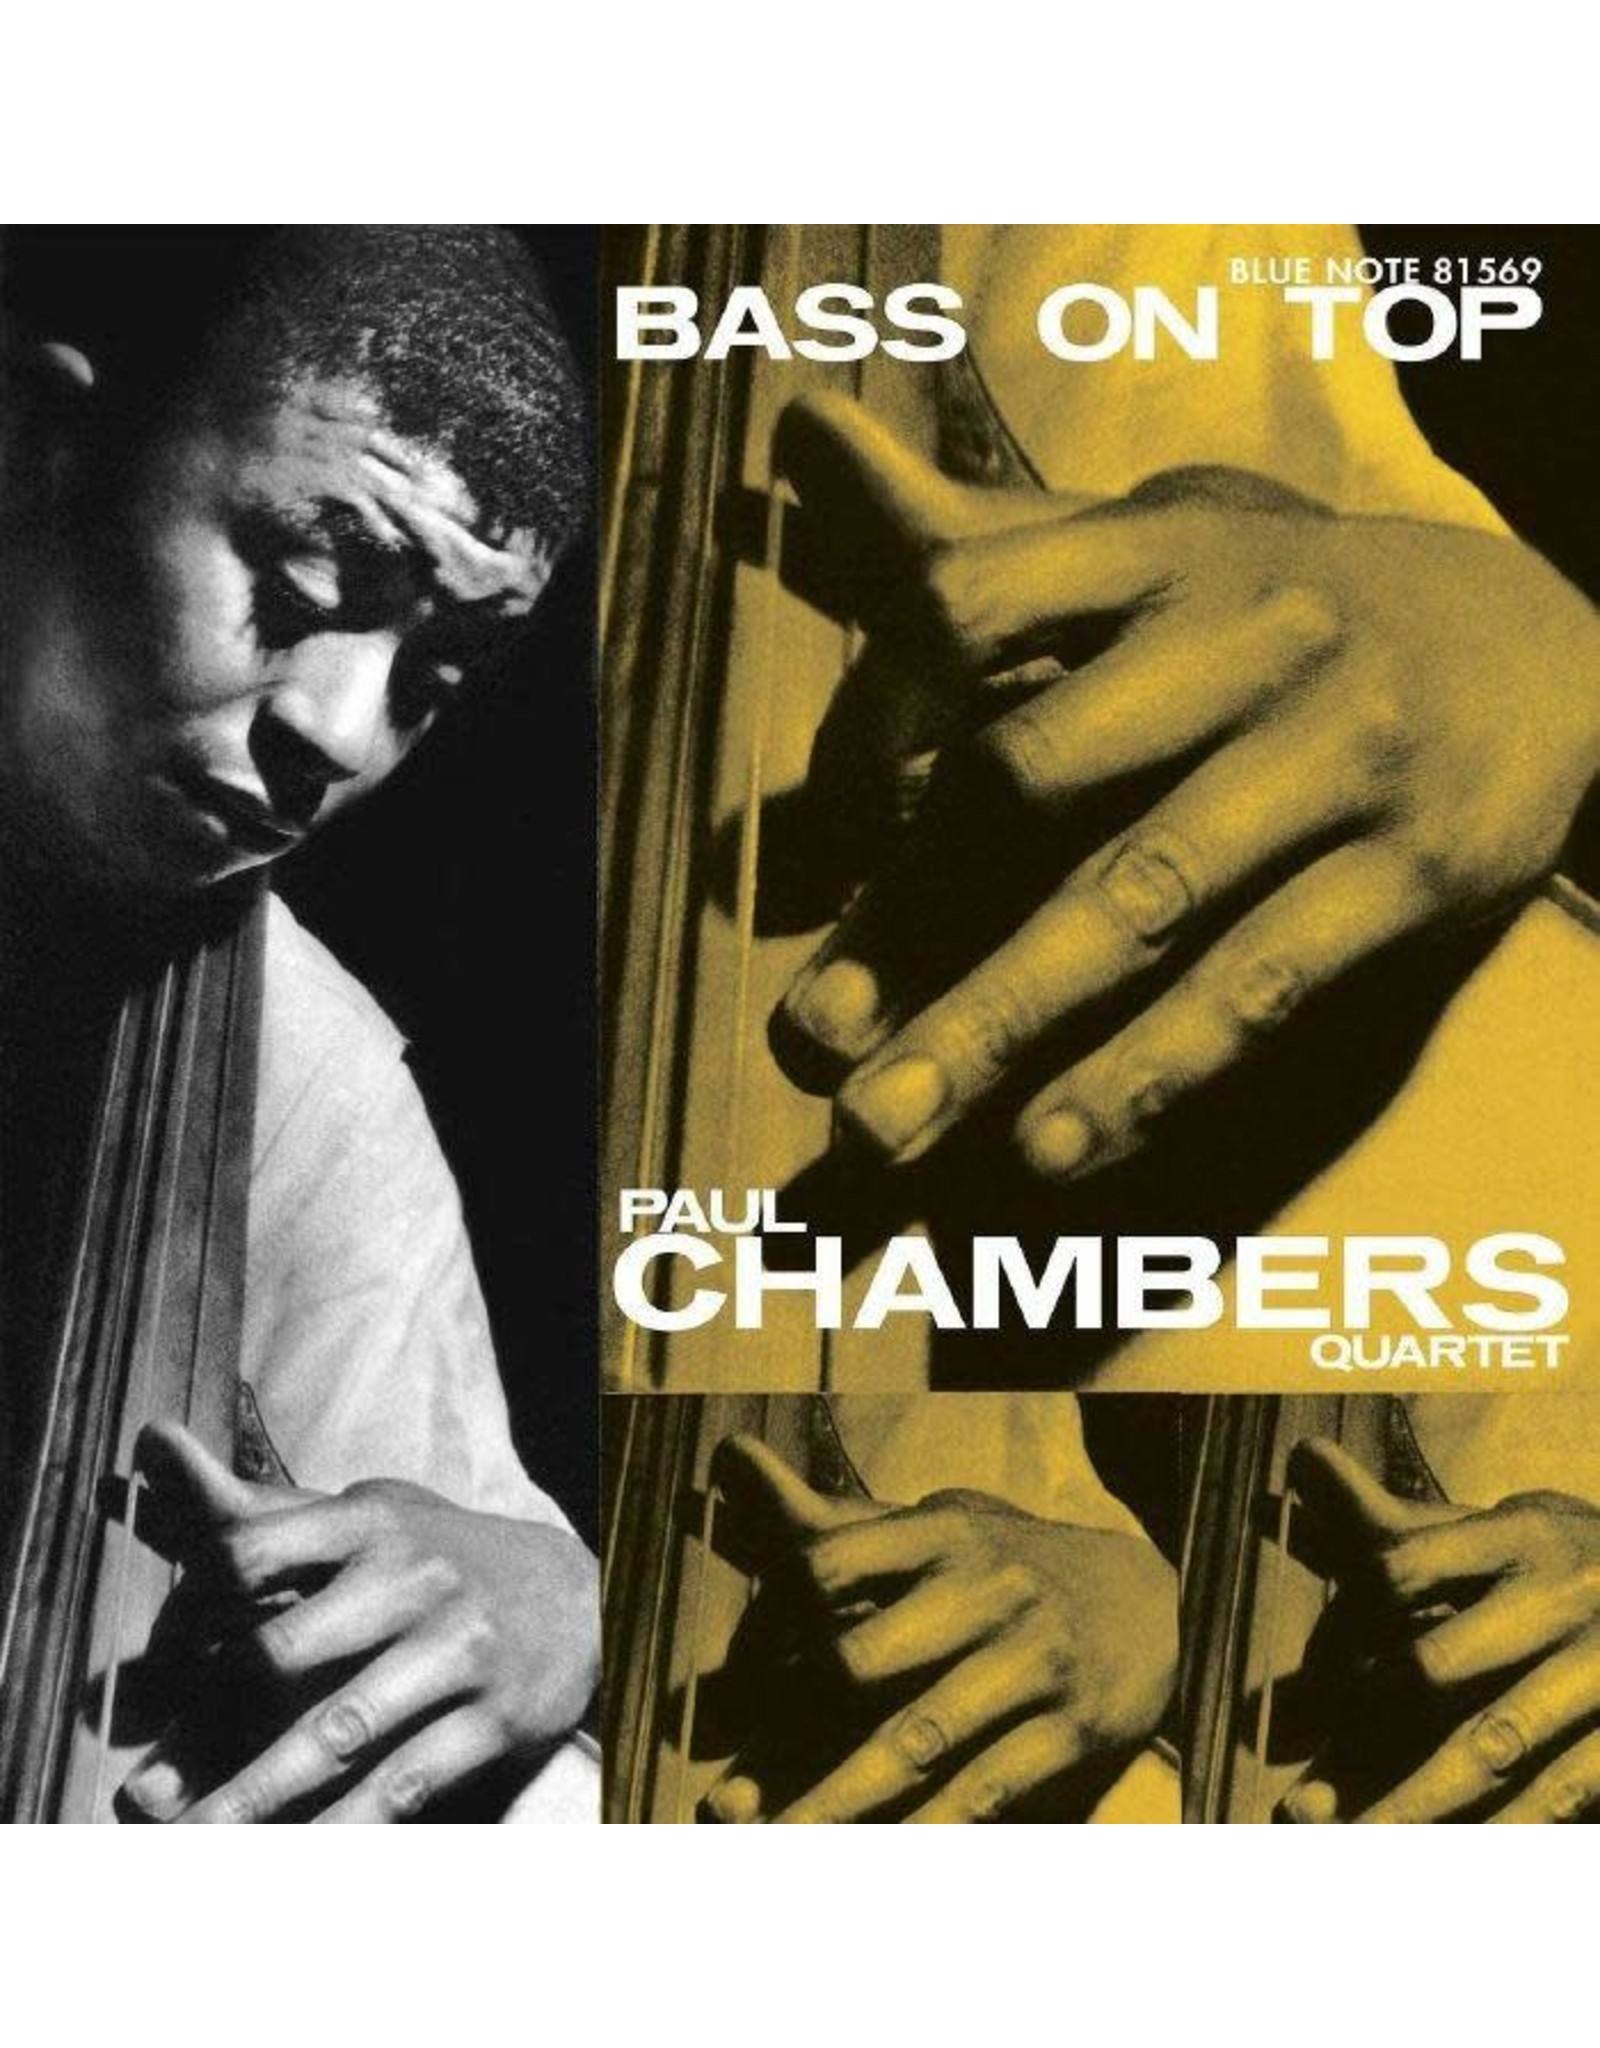 Chambers, Paul - Bass On Top (Tone Poet) LP